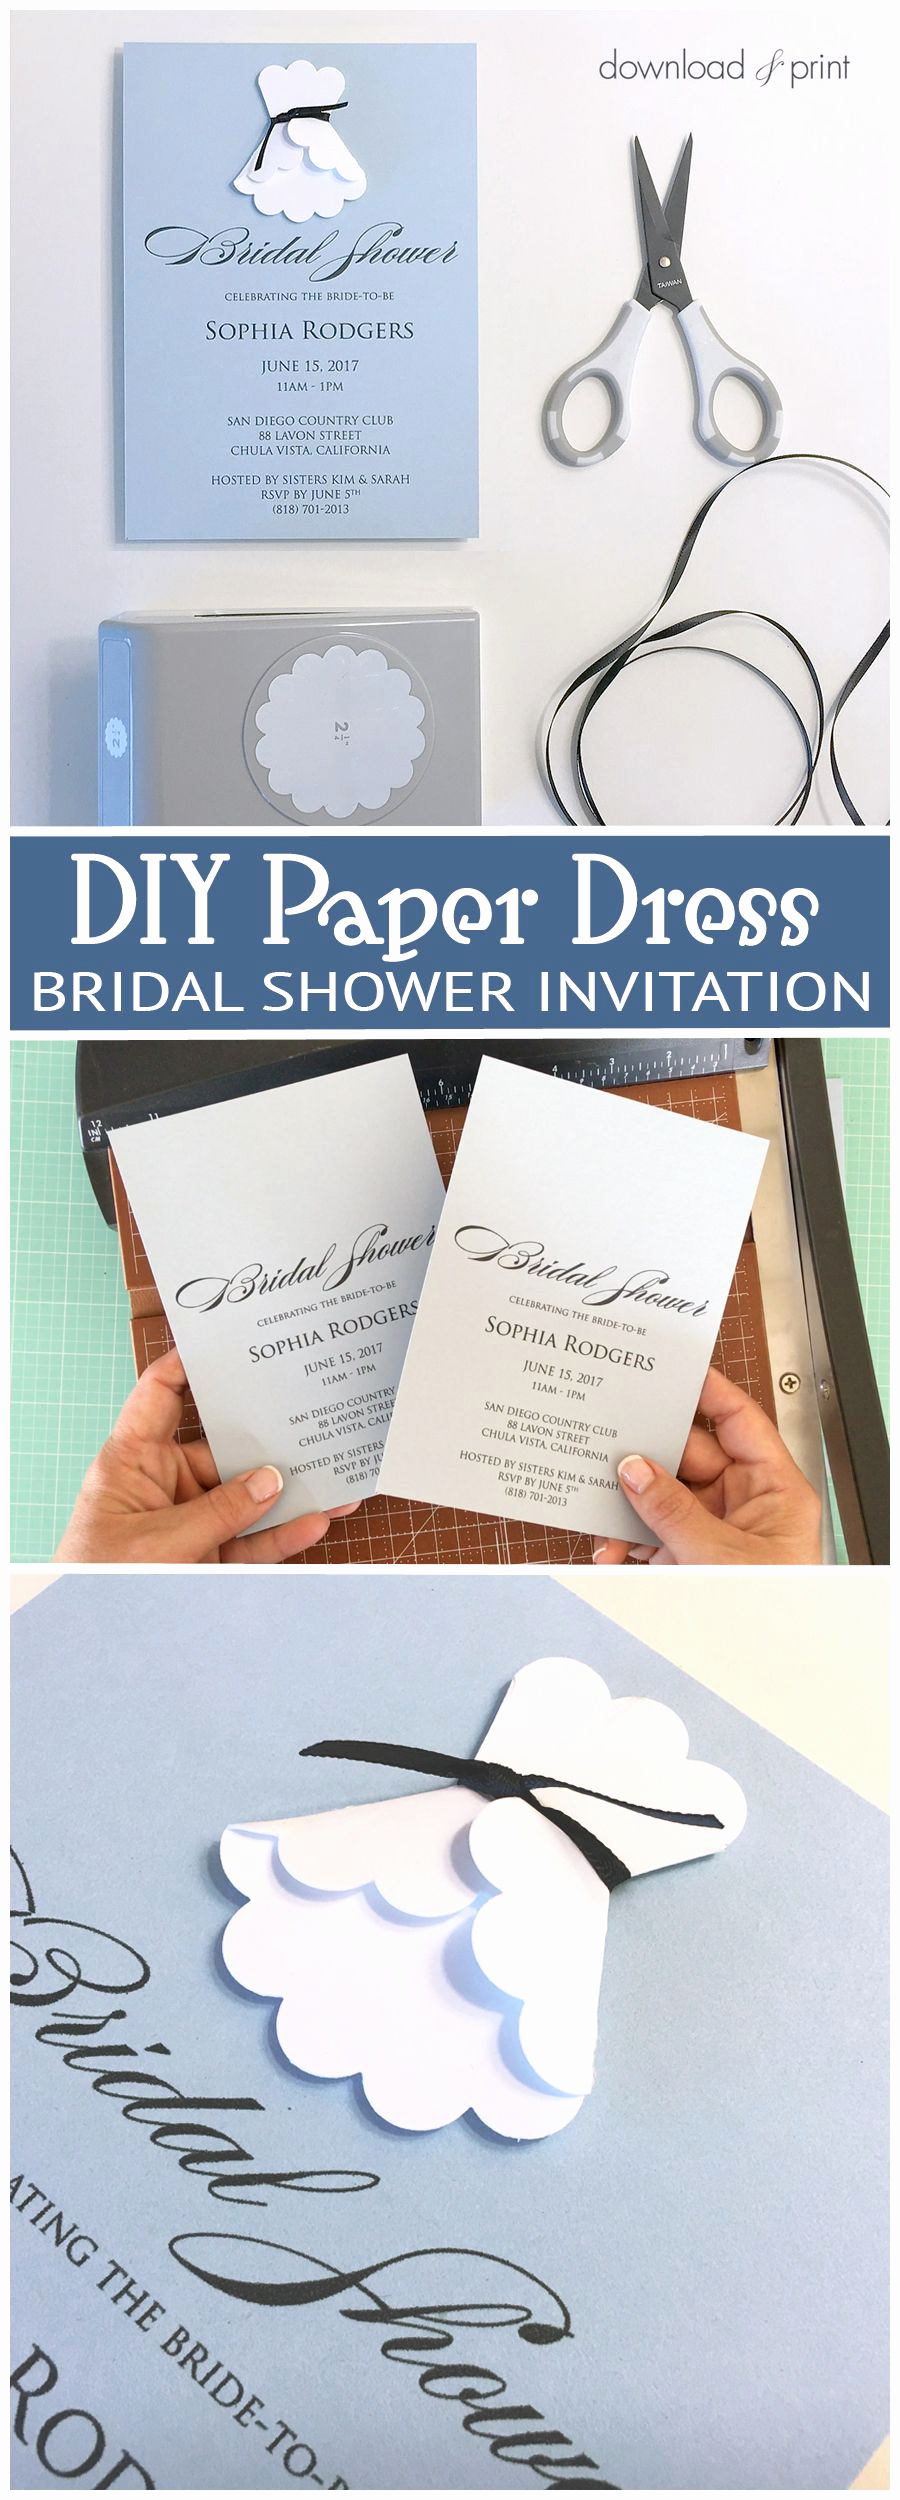 Wedding Shower Invitation Template Best Of Sweet and Simple Bridal Shower Invitation with A Diy Paper